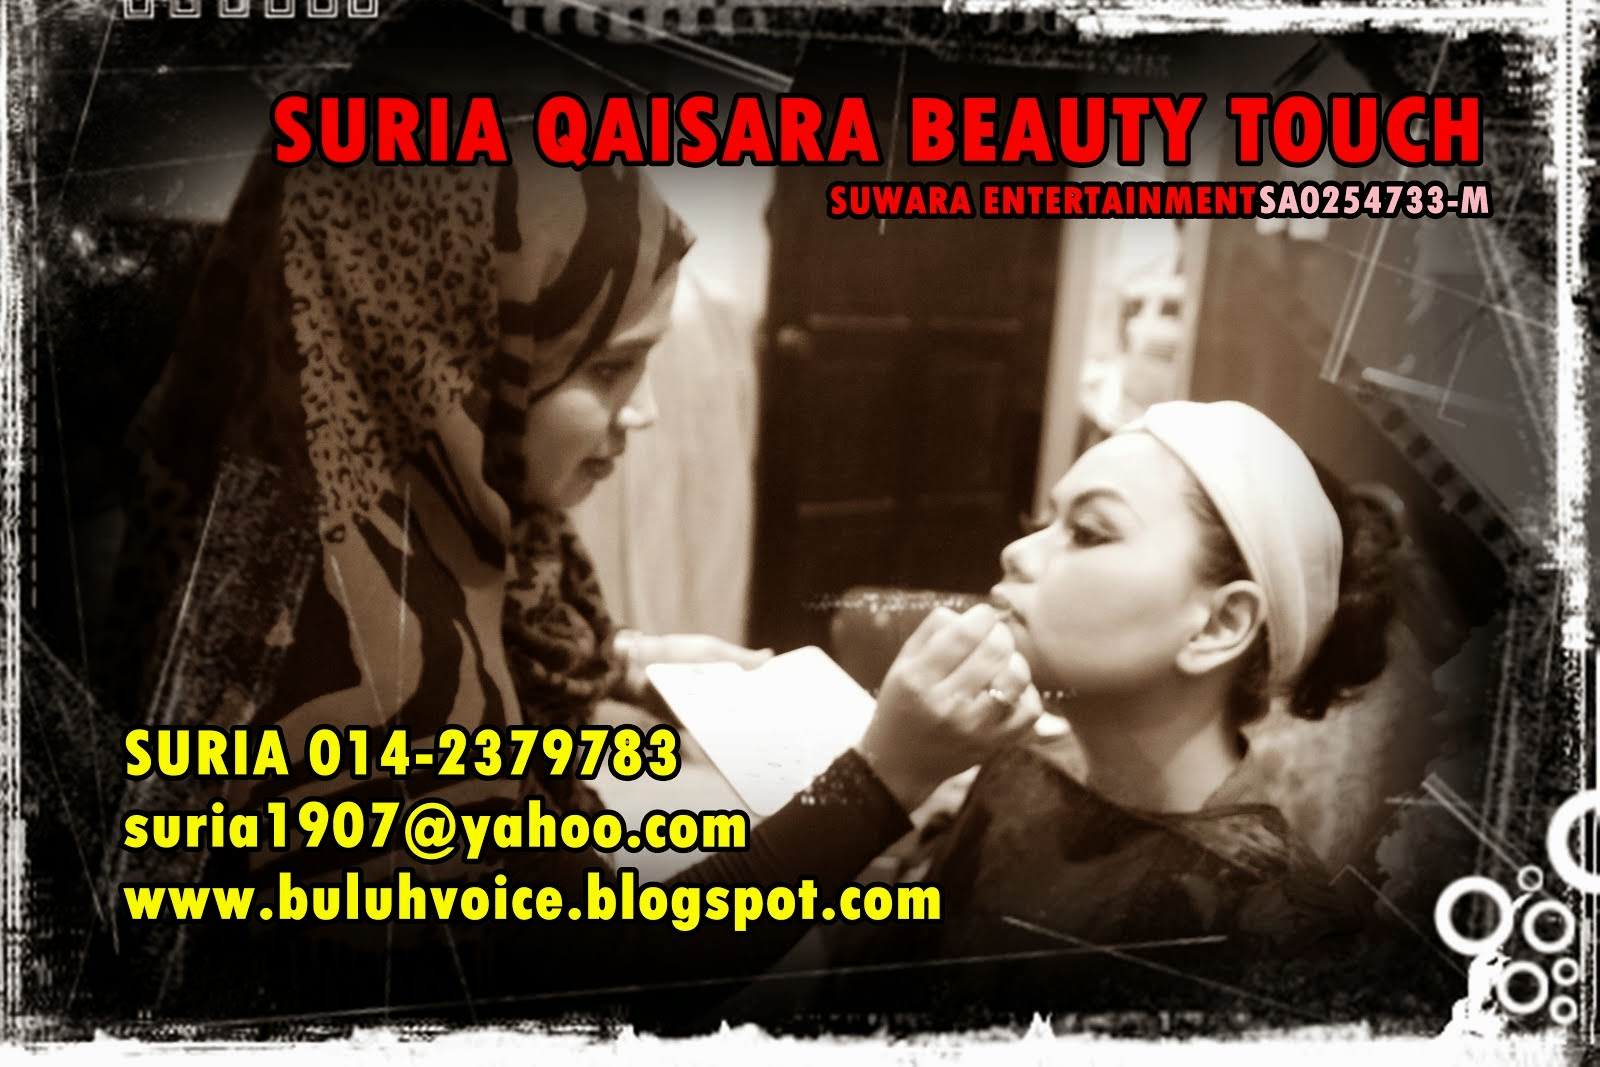 SURIA QAISARA BEAUTY TOUCH